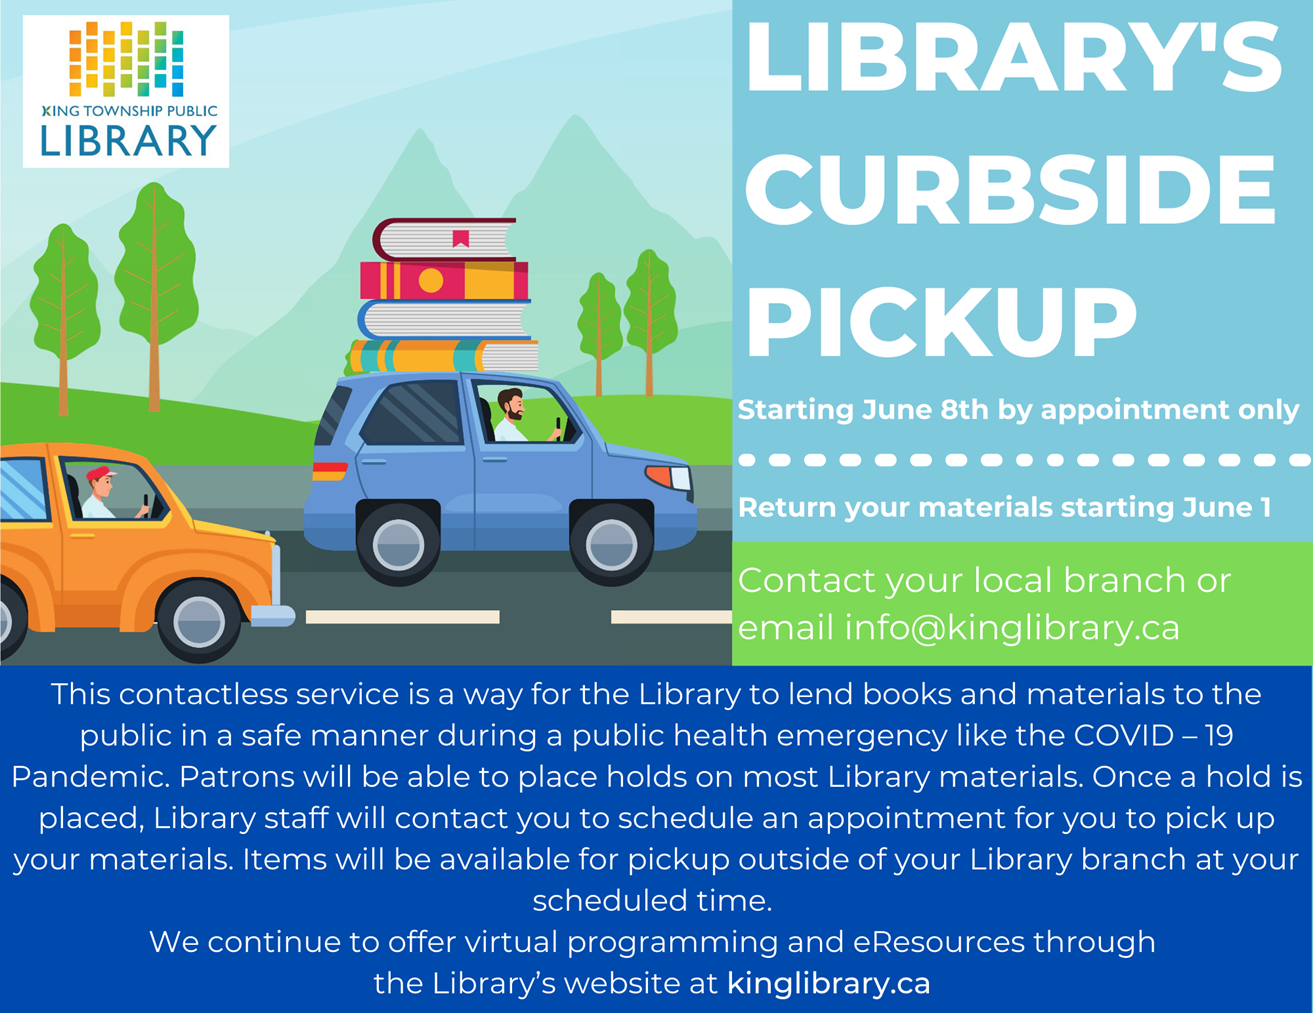 Library's Curbside Pickup